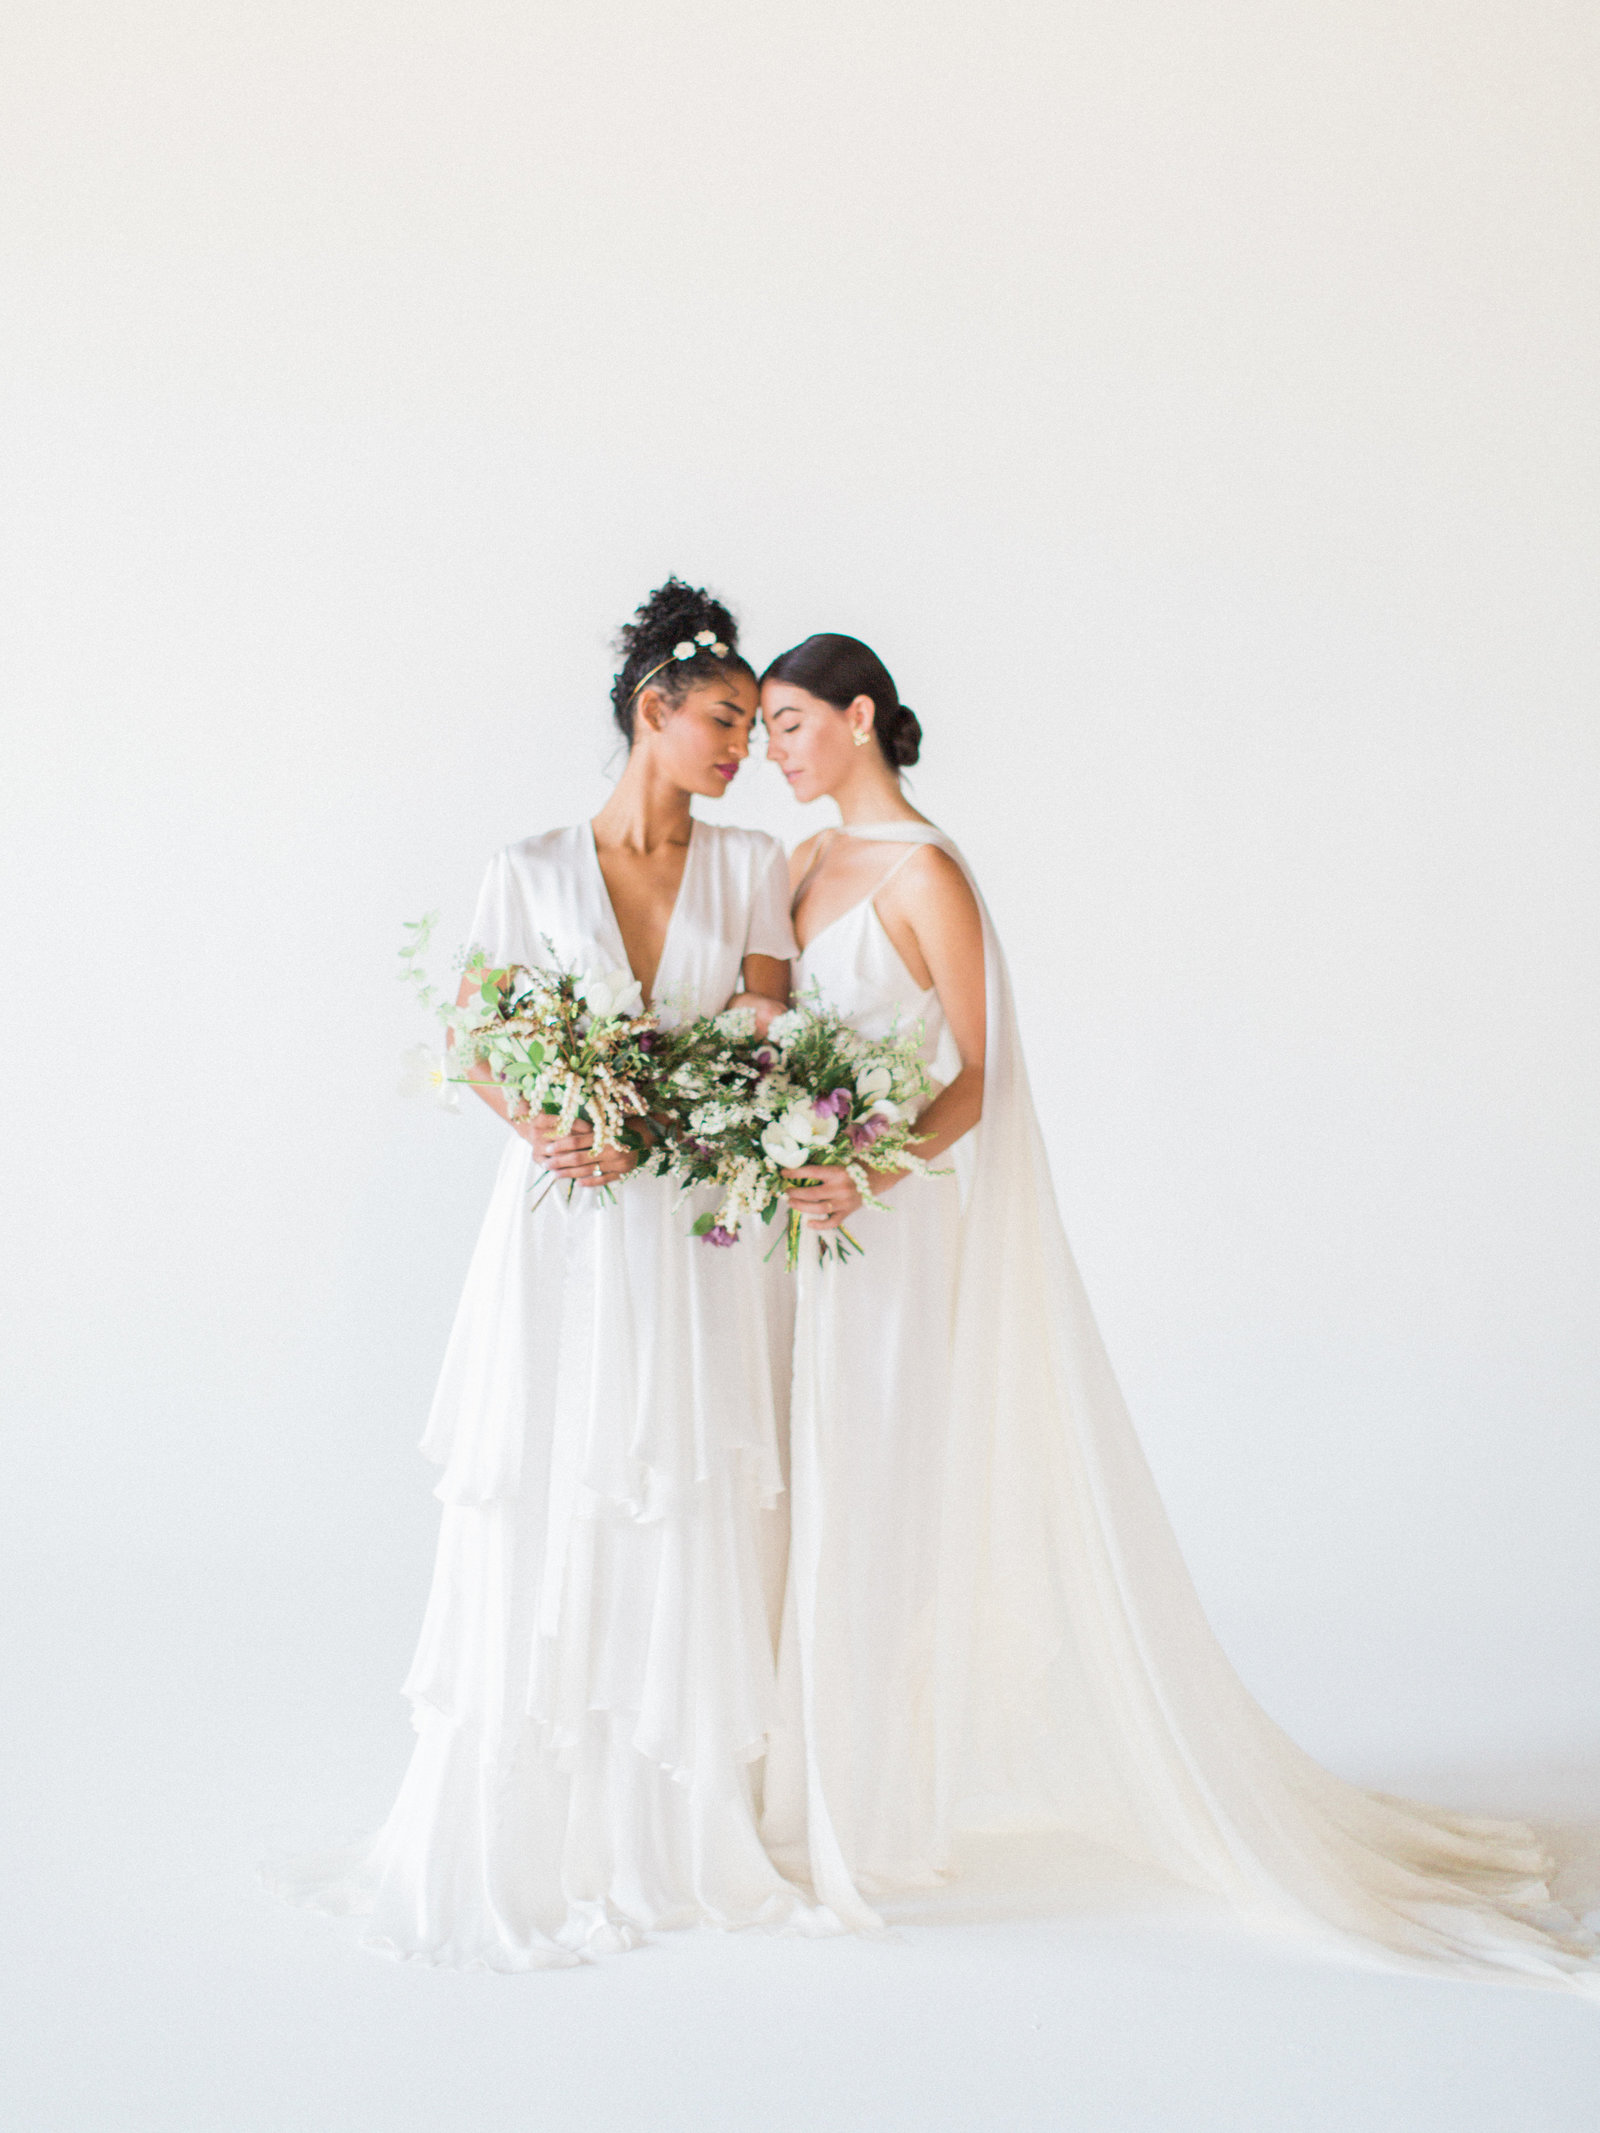 Christa O'Brien Photography Georgia Wedding photographer fine art film  lgbtq friendly same sex wedding